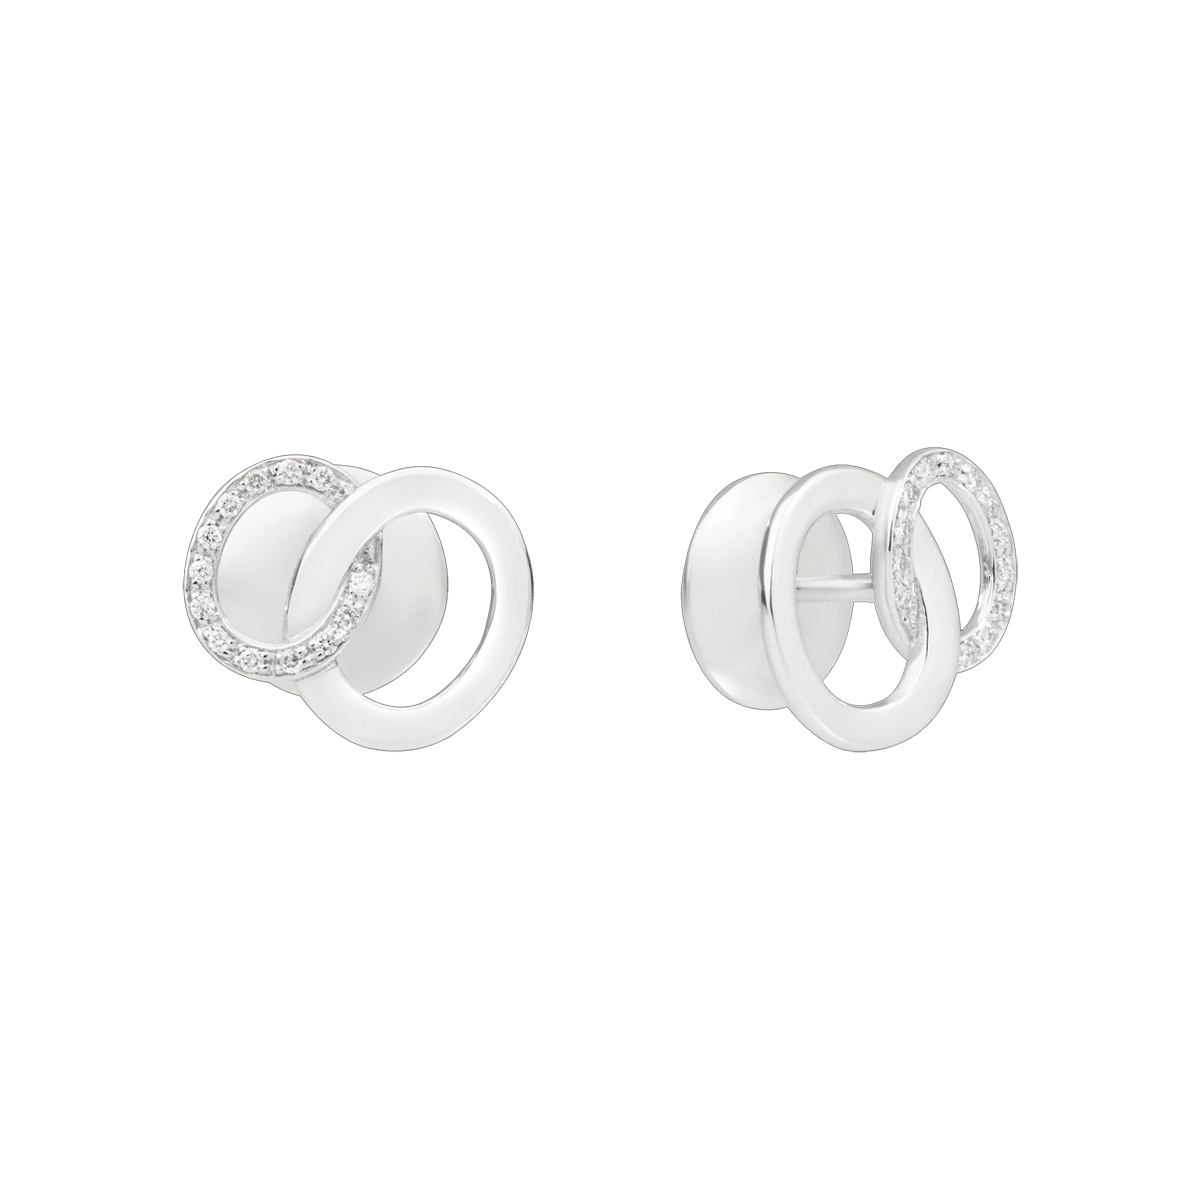 Diamond Brera Earrings